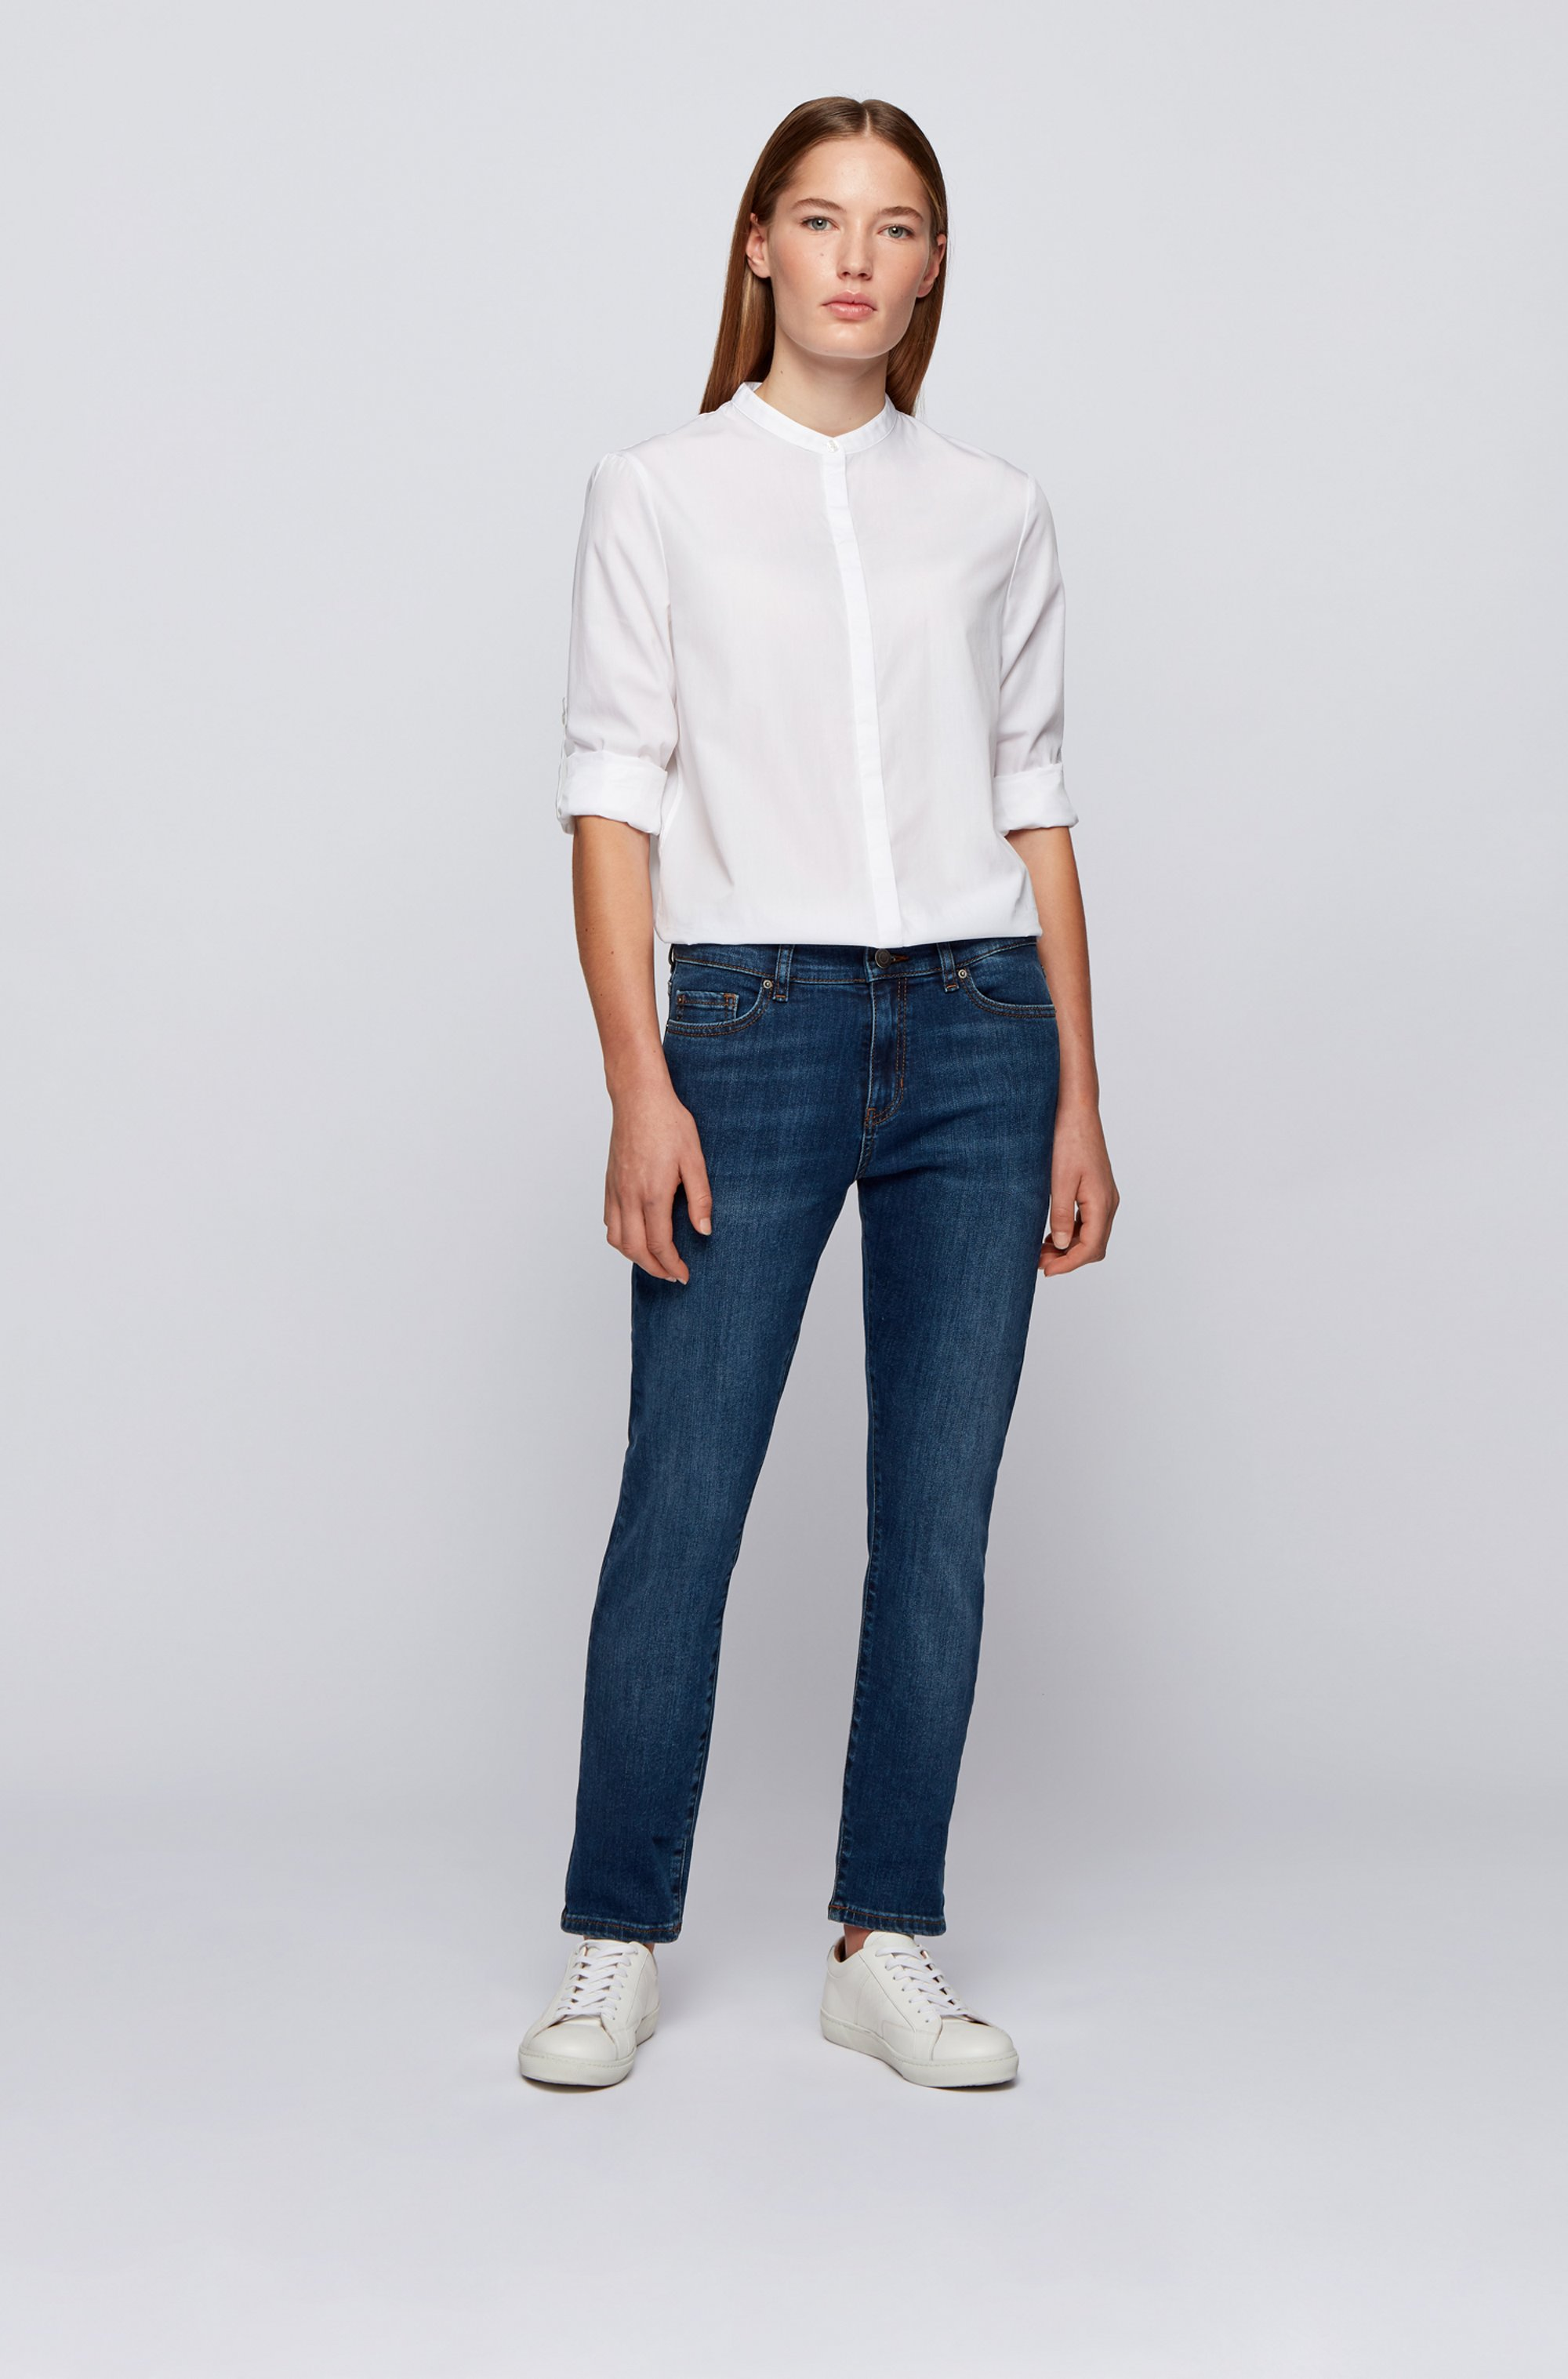 Relaxed-fit blouse in lightweight cotton with stand collar